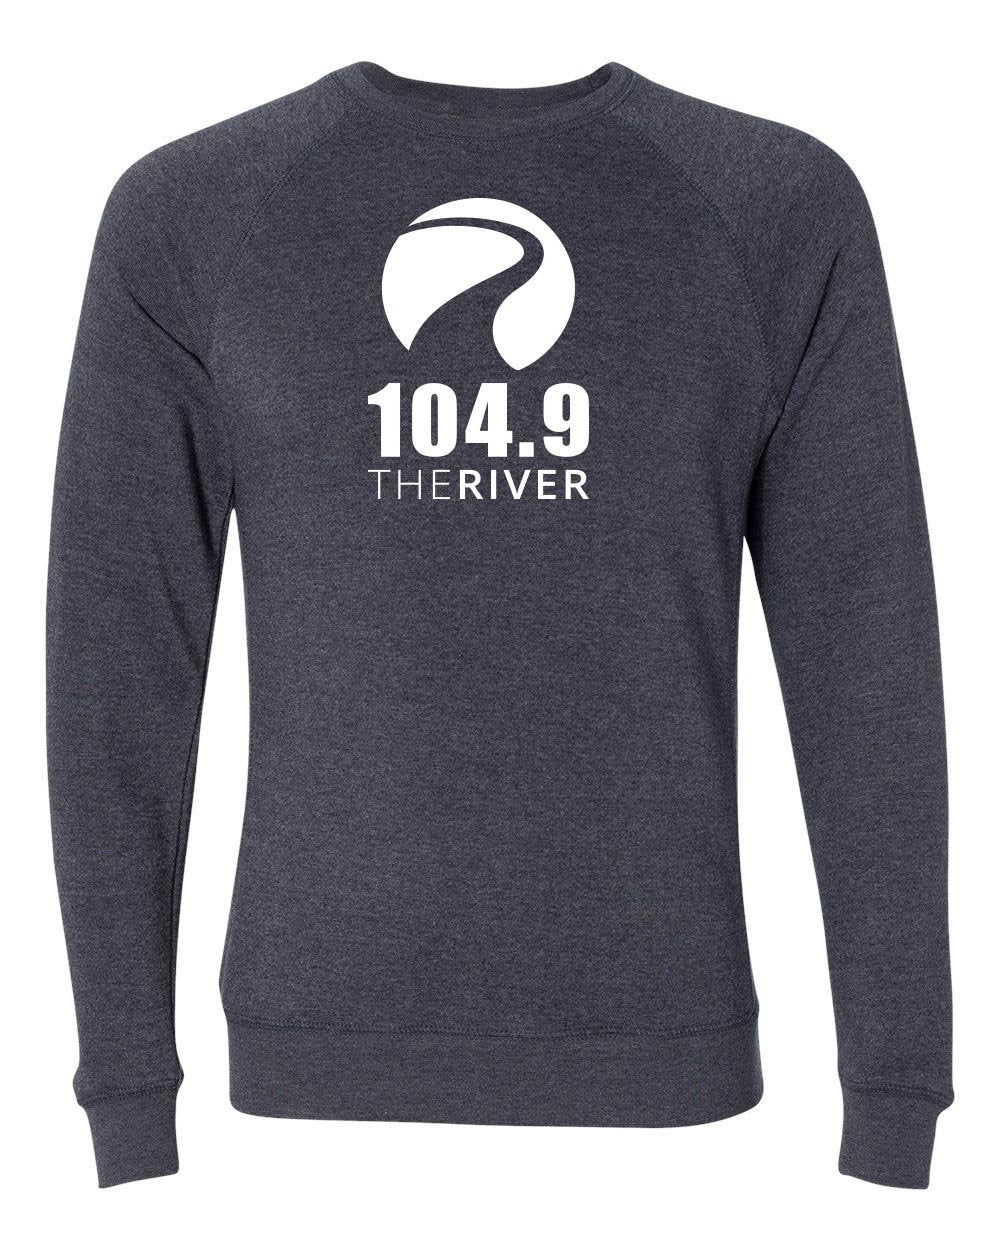 104.9 The River Crewneck Sweatshirt